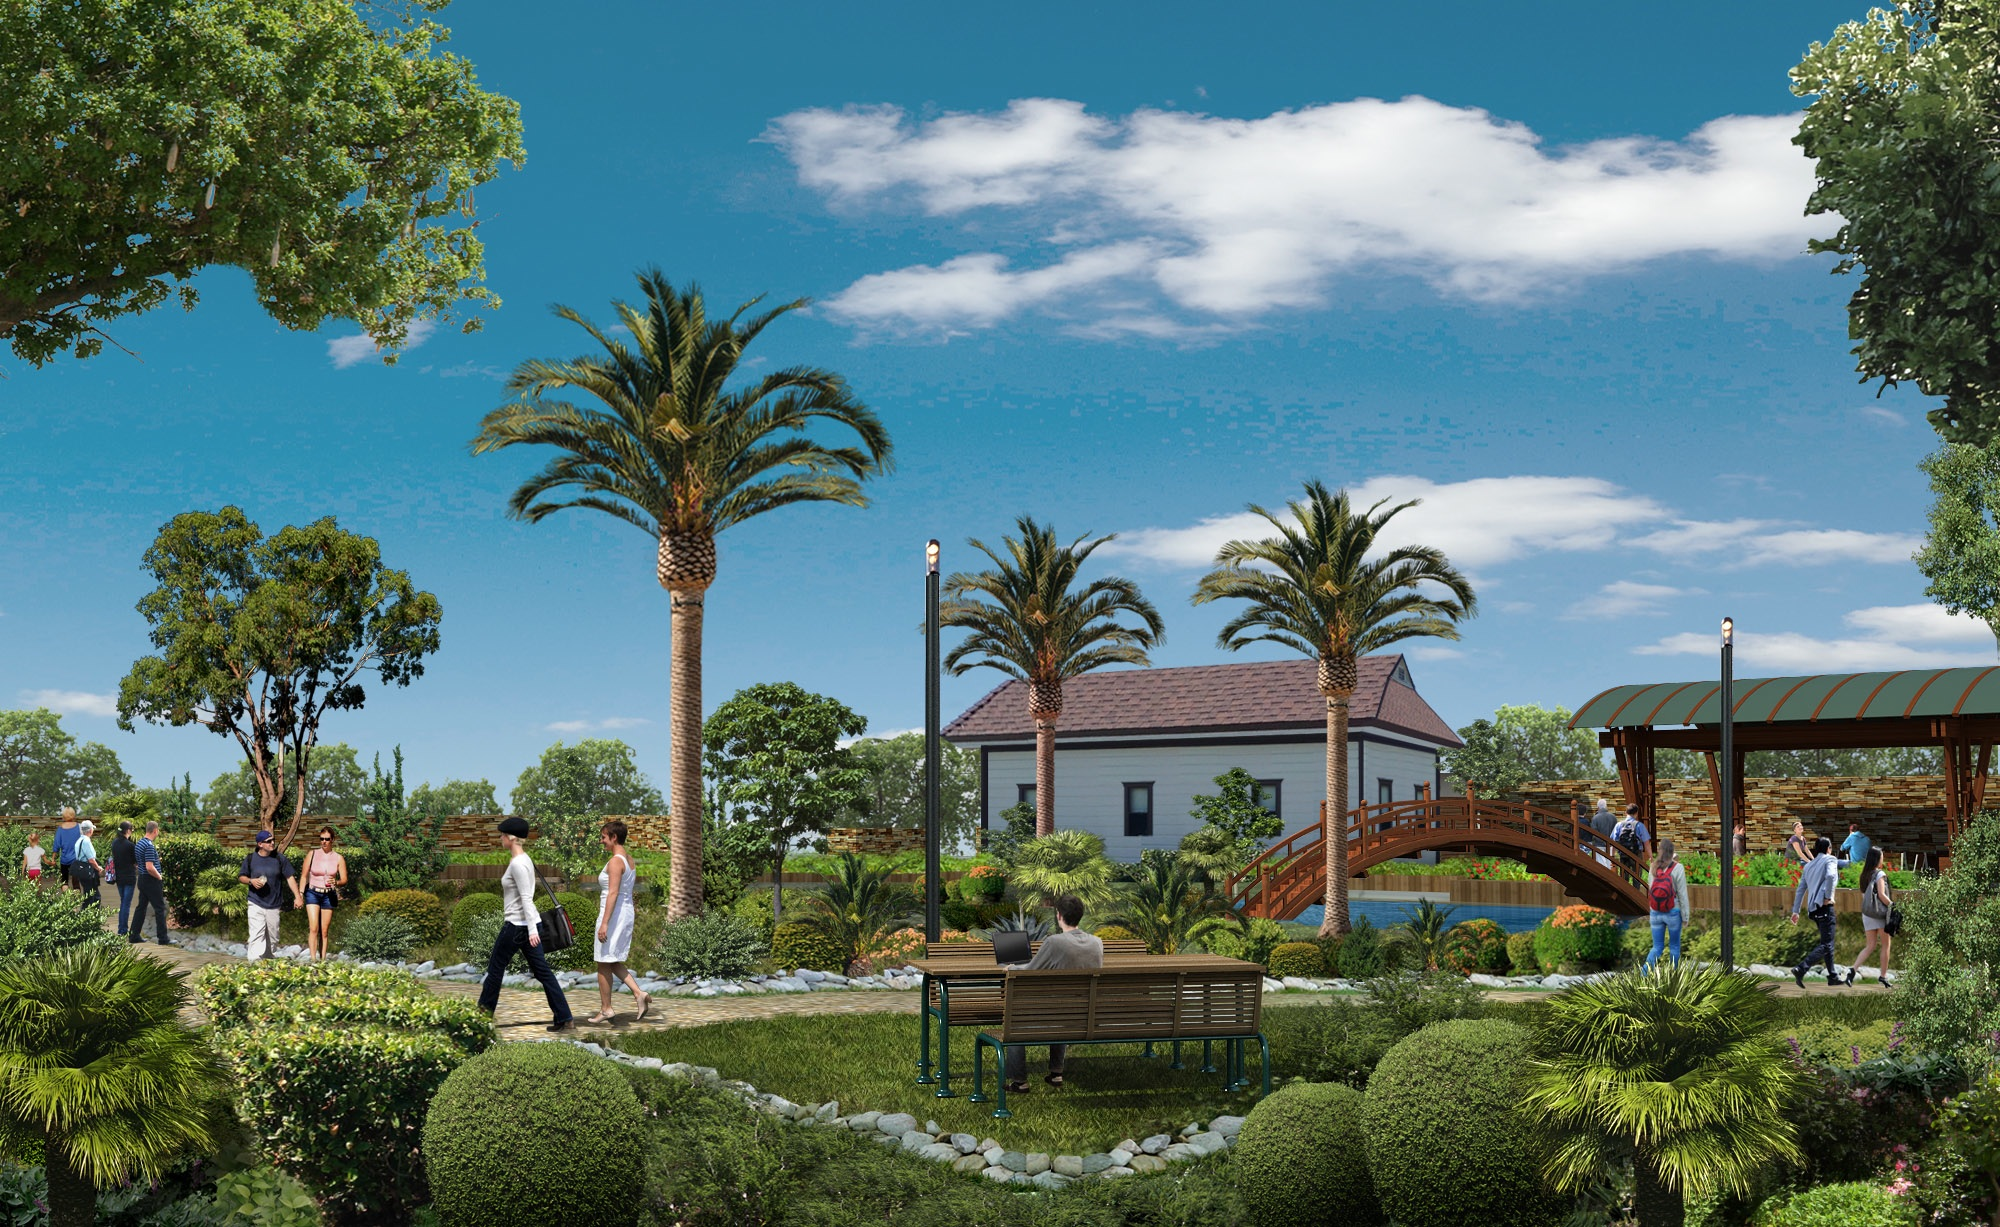 An artist's somewhat fanciful imagining of part of the proposed Pacific View campus, based on the Encinitas Arts, Culture and Ecology Alliance's original Letter of Intent to the city. Additional artistic interpretations can be seen here and here.